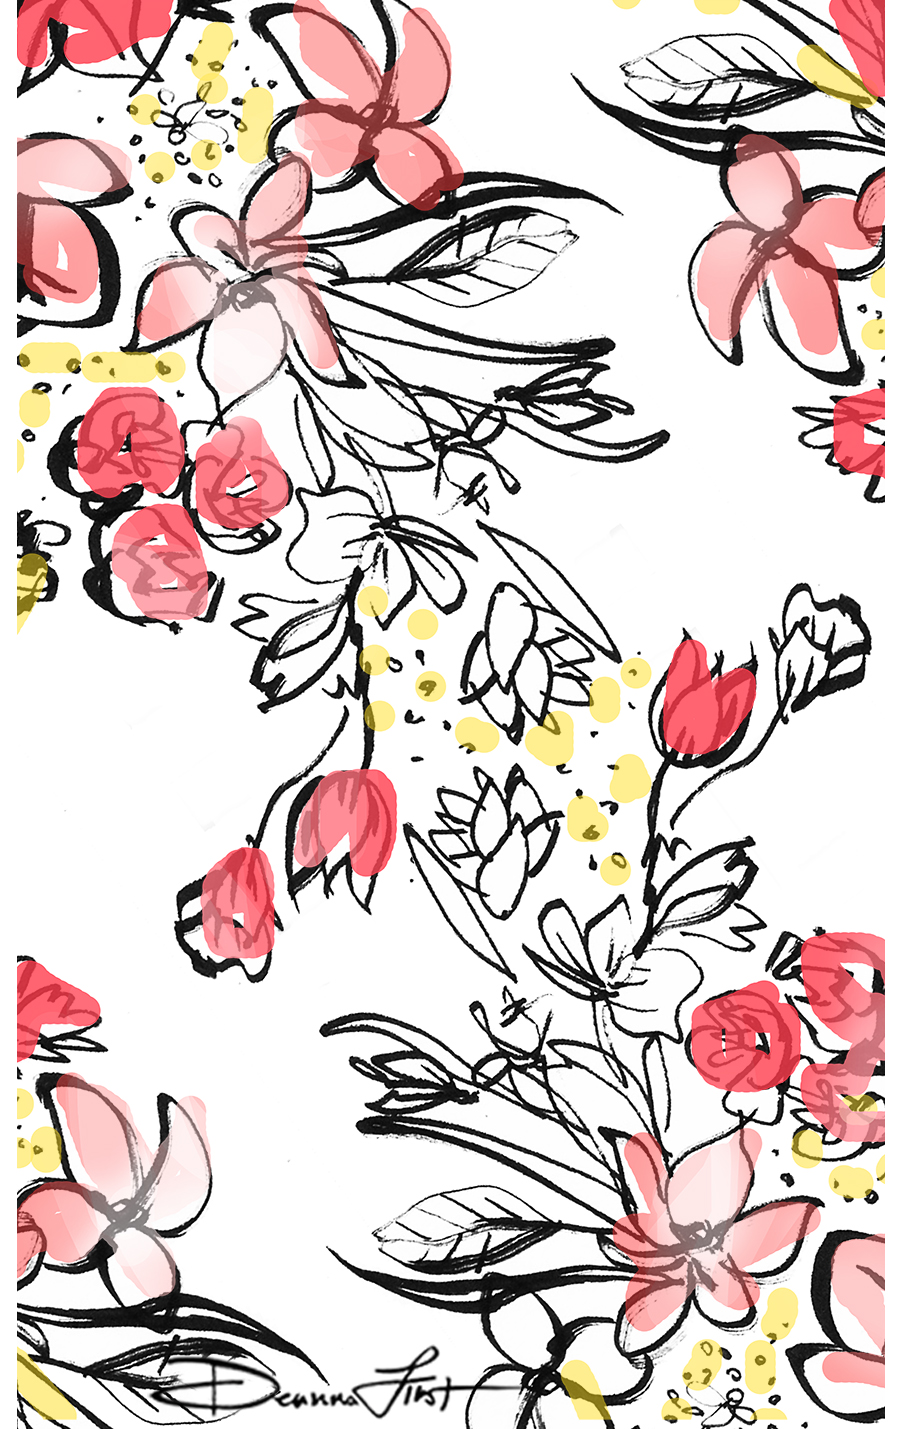 PEN_INKFLORAL_thick_deannafirstborder.jpg